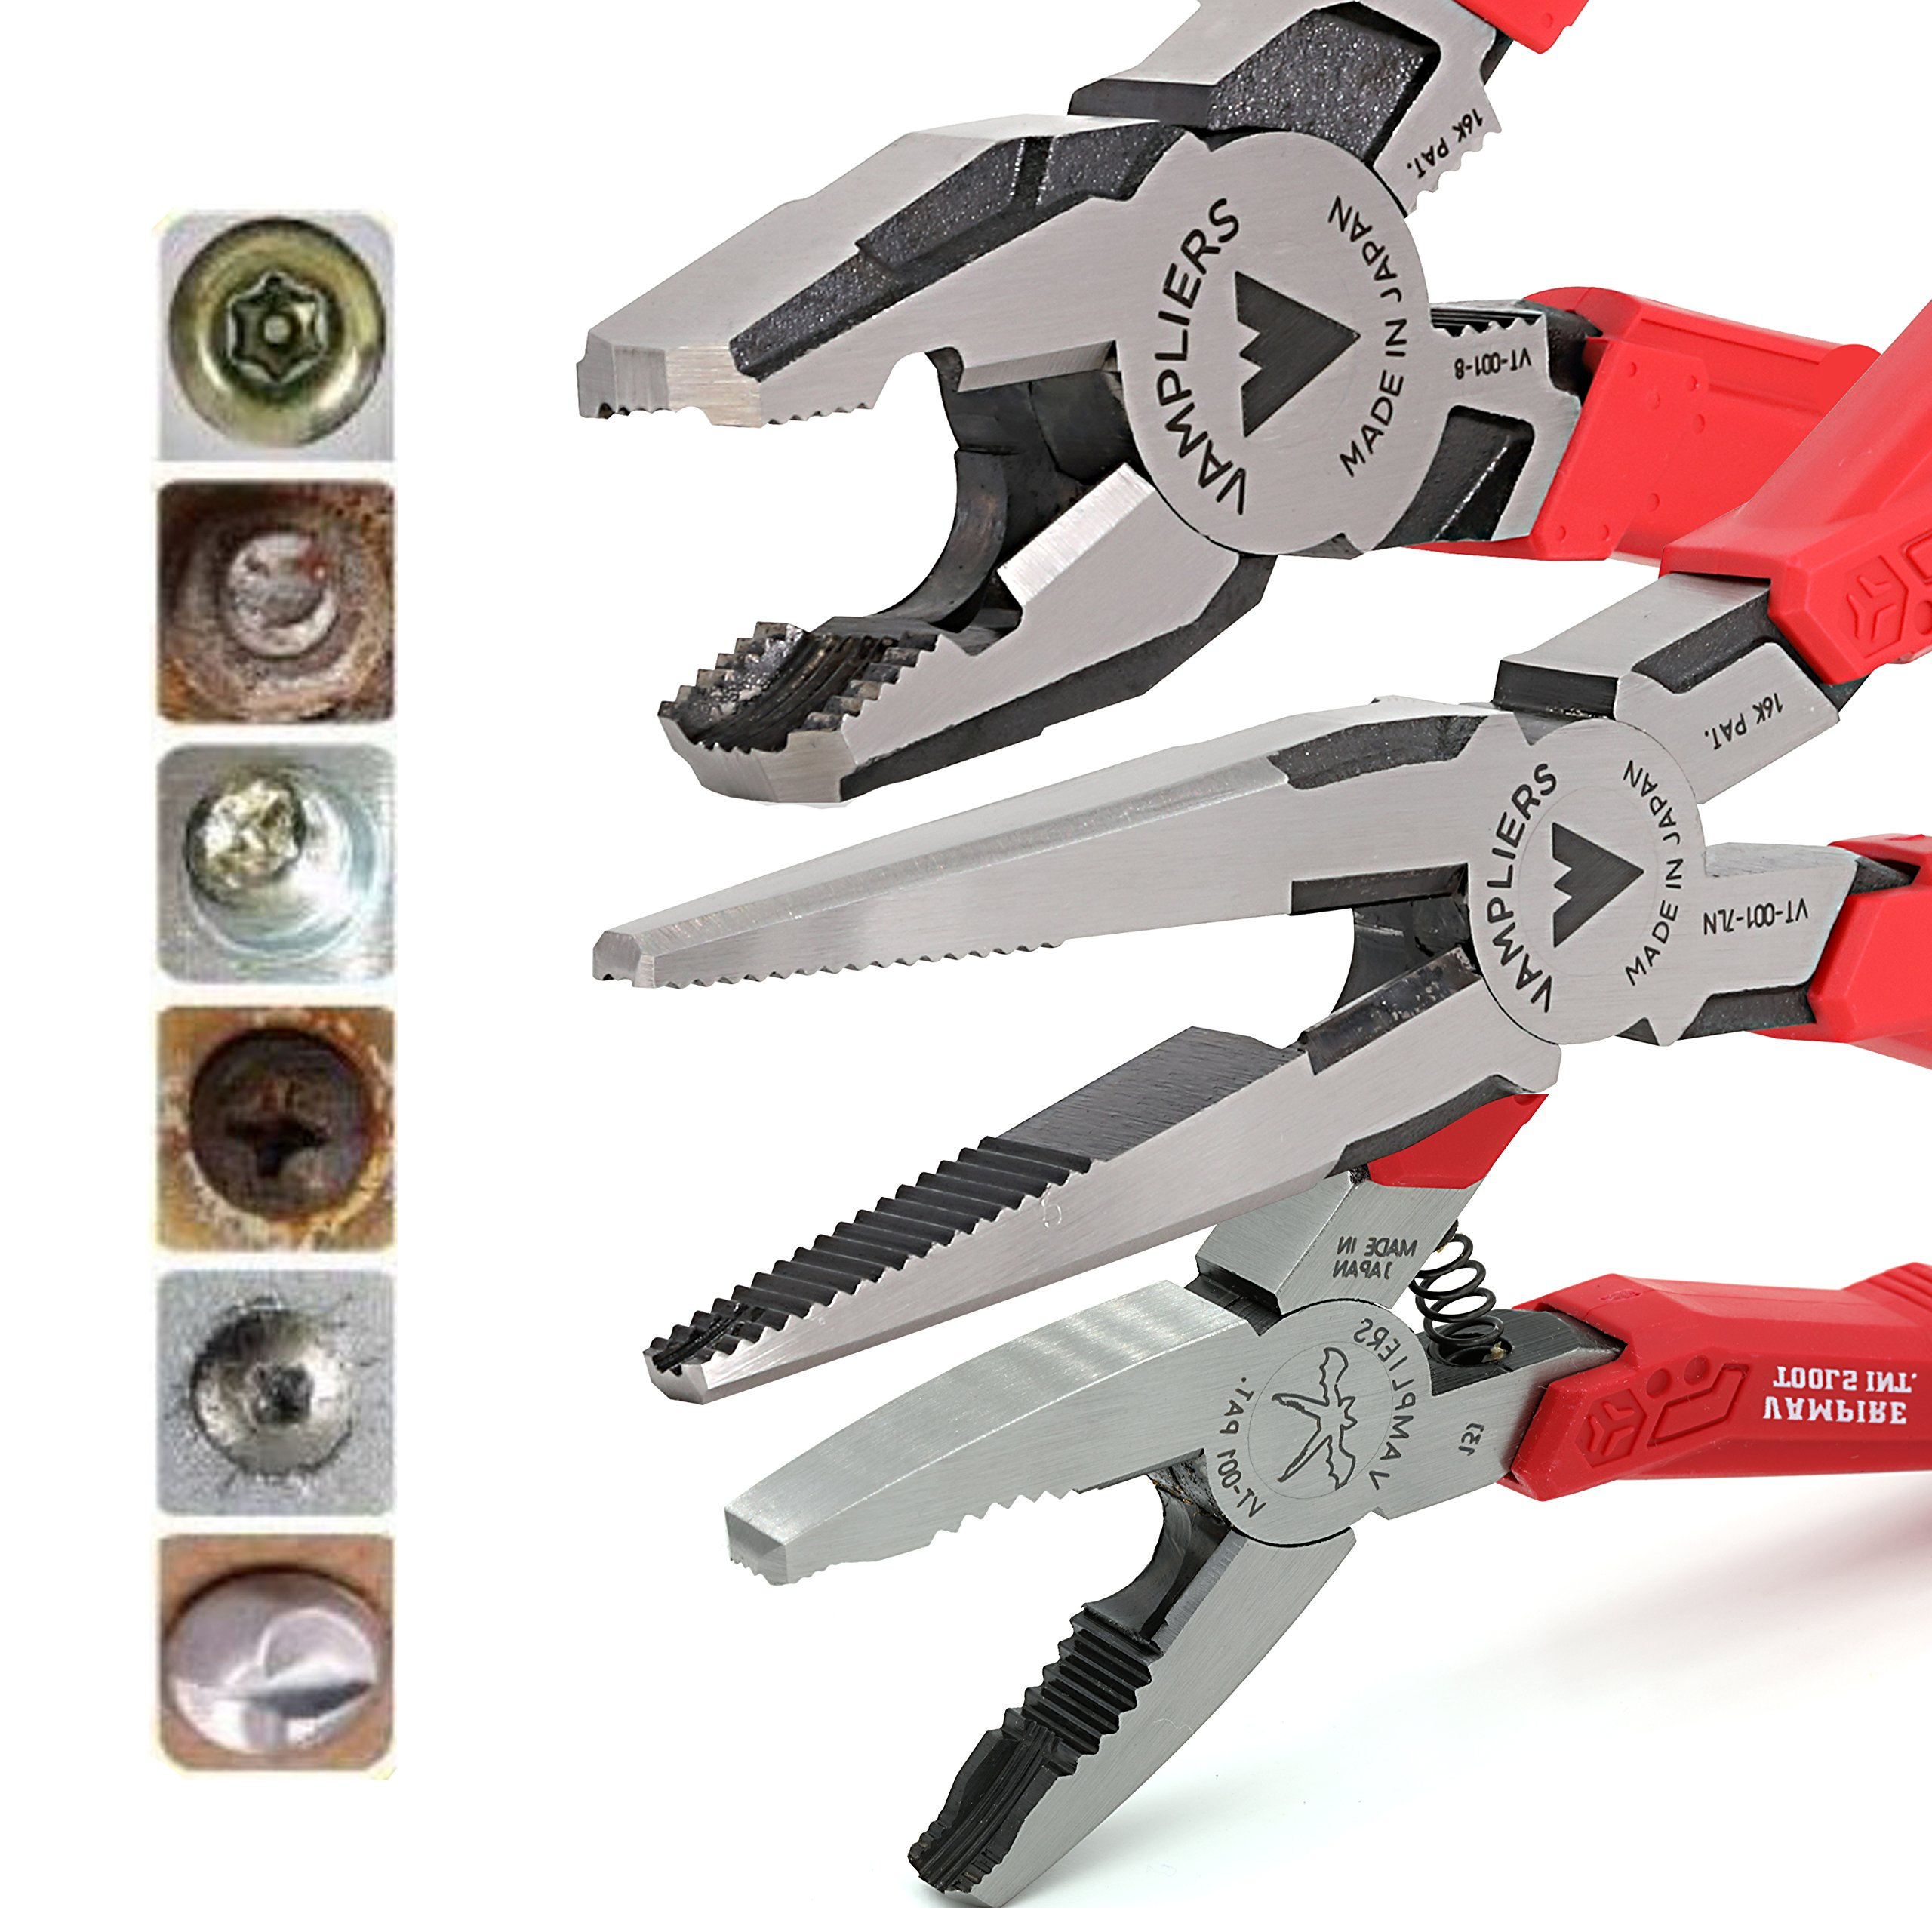 VamPLIERS. World's Best Pliers! 3-PC Set S3F Specialty Screw Extraction Pliers. Extract Stripped Stuck Security, Corroded, or Rusted Screws